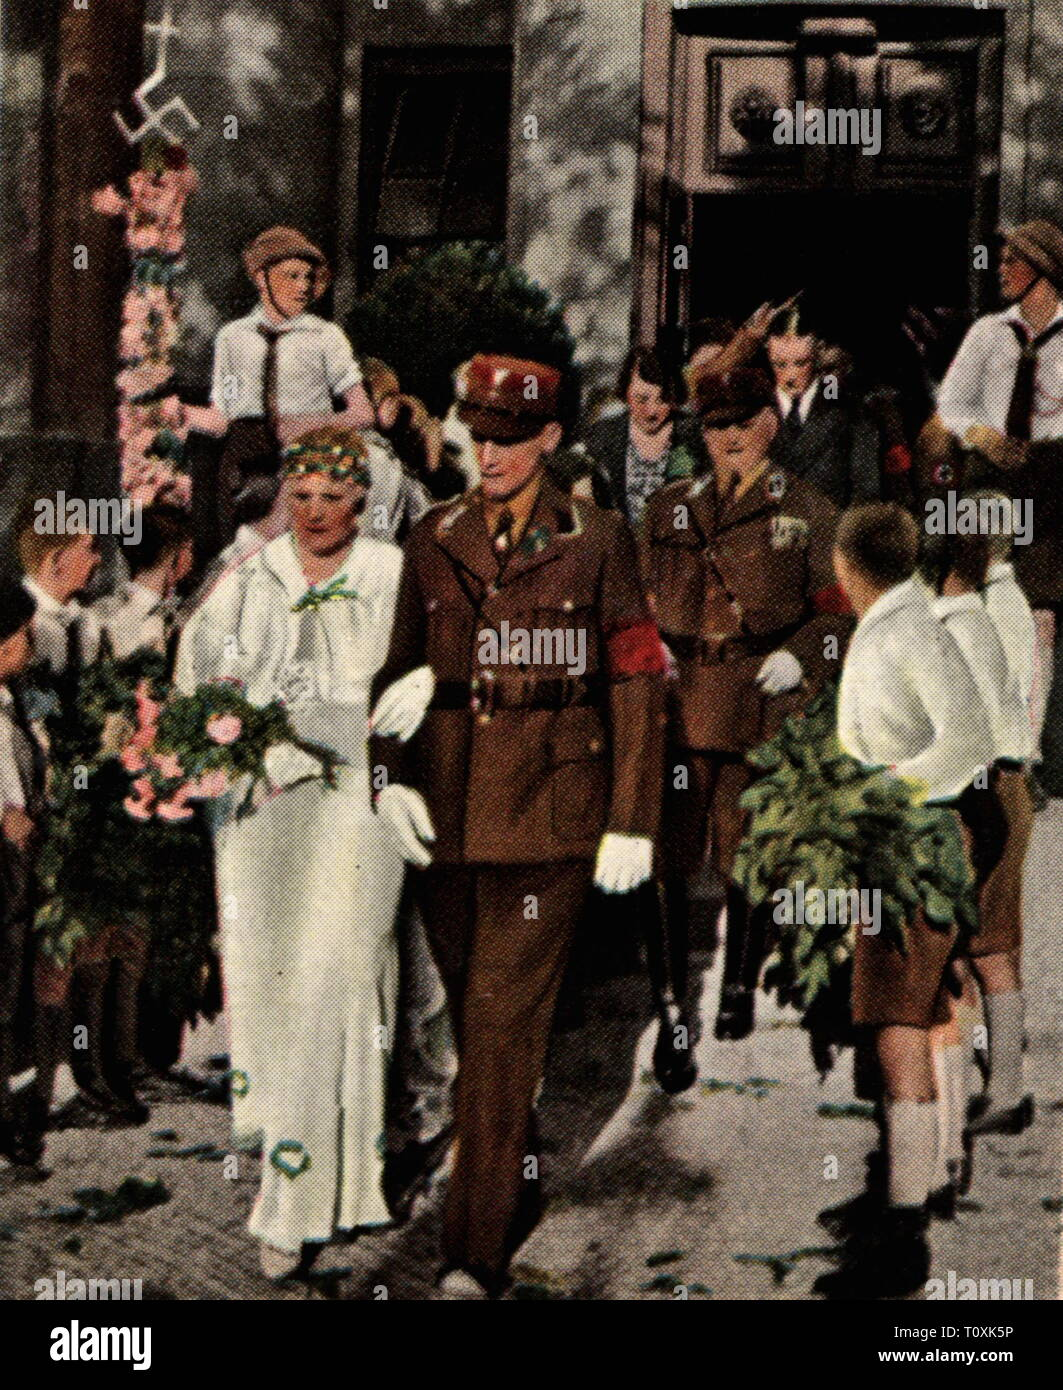 "Nazism / National Socialism, event, mass marriage by SA men, Berlin, December 1934, coloured photograph, cigarette card, series ""Die Nachkriegszeit"", 1935, Sturmabteilung, storm battalion, stormtroopers, armed and uniformed branch of the NSDAP, men, man, mass wedding, marriage, wedding, weddings, bridal couple, bridal couples, couples, couple, Nazi, Nazis, NSDAP, Germany, German Reich, Third Reich, people, 20th century, 1930s, event, events, coloured, colored, post war period, post-war period, post-war years, post-war era, historic, historical, Additional-Rights-Clearance-Info-Not-Available Stock Photo"